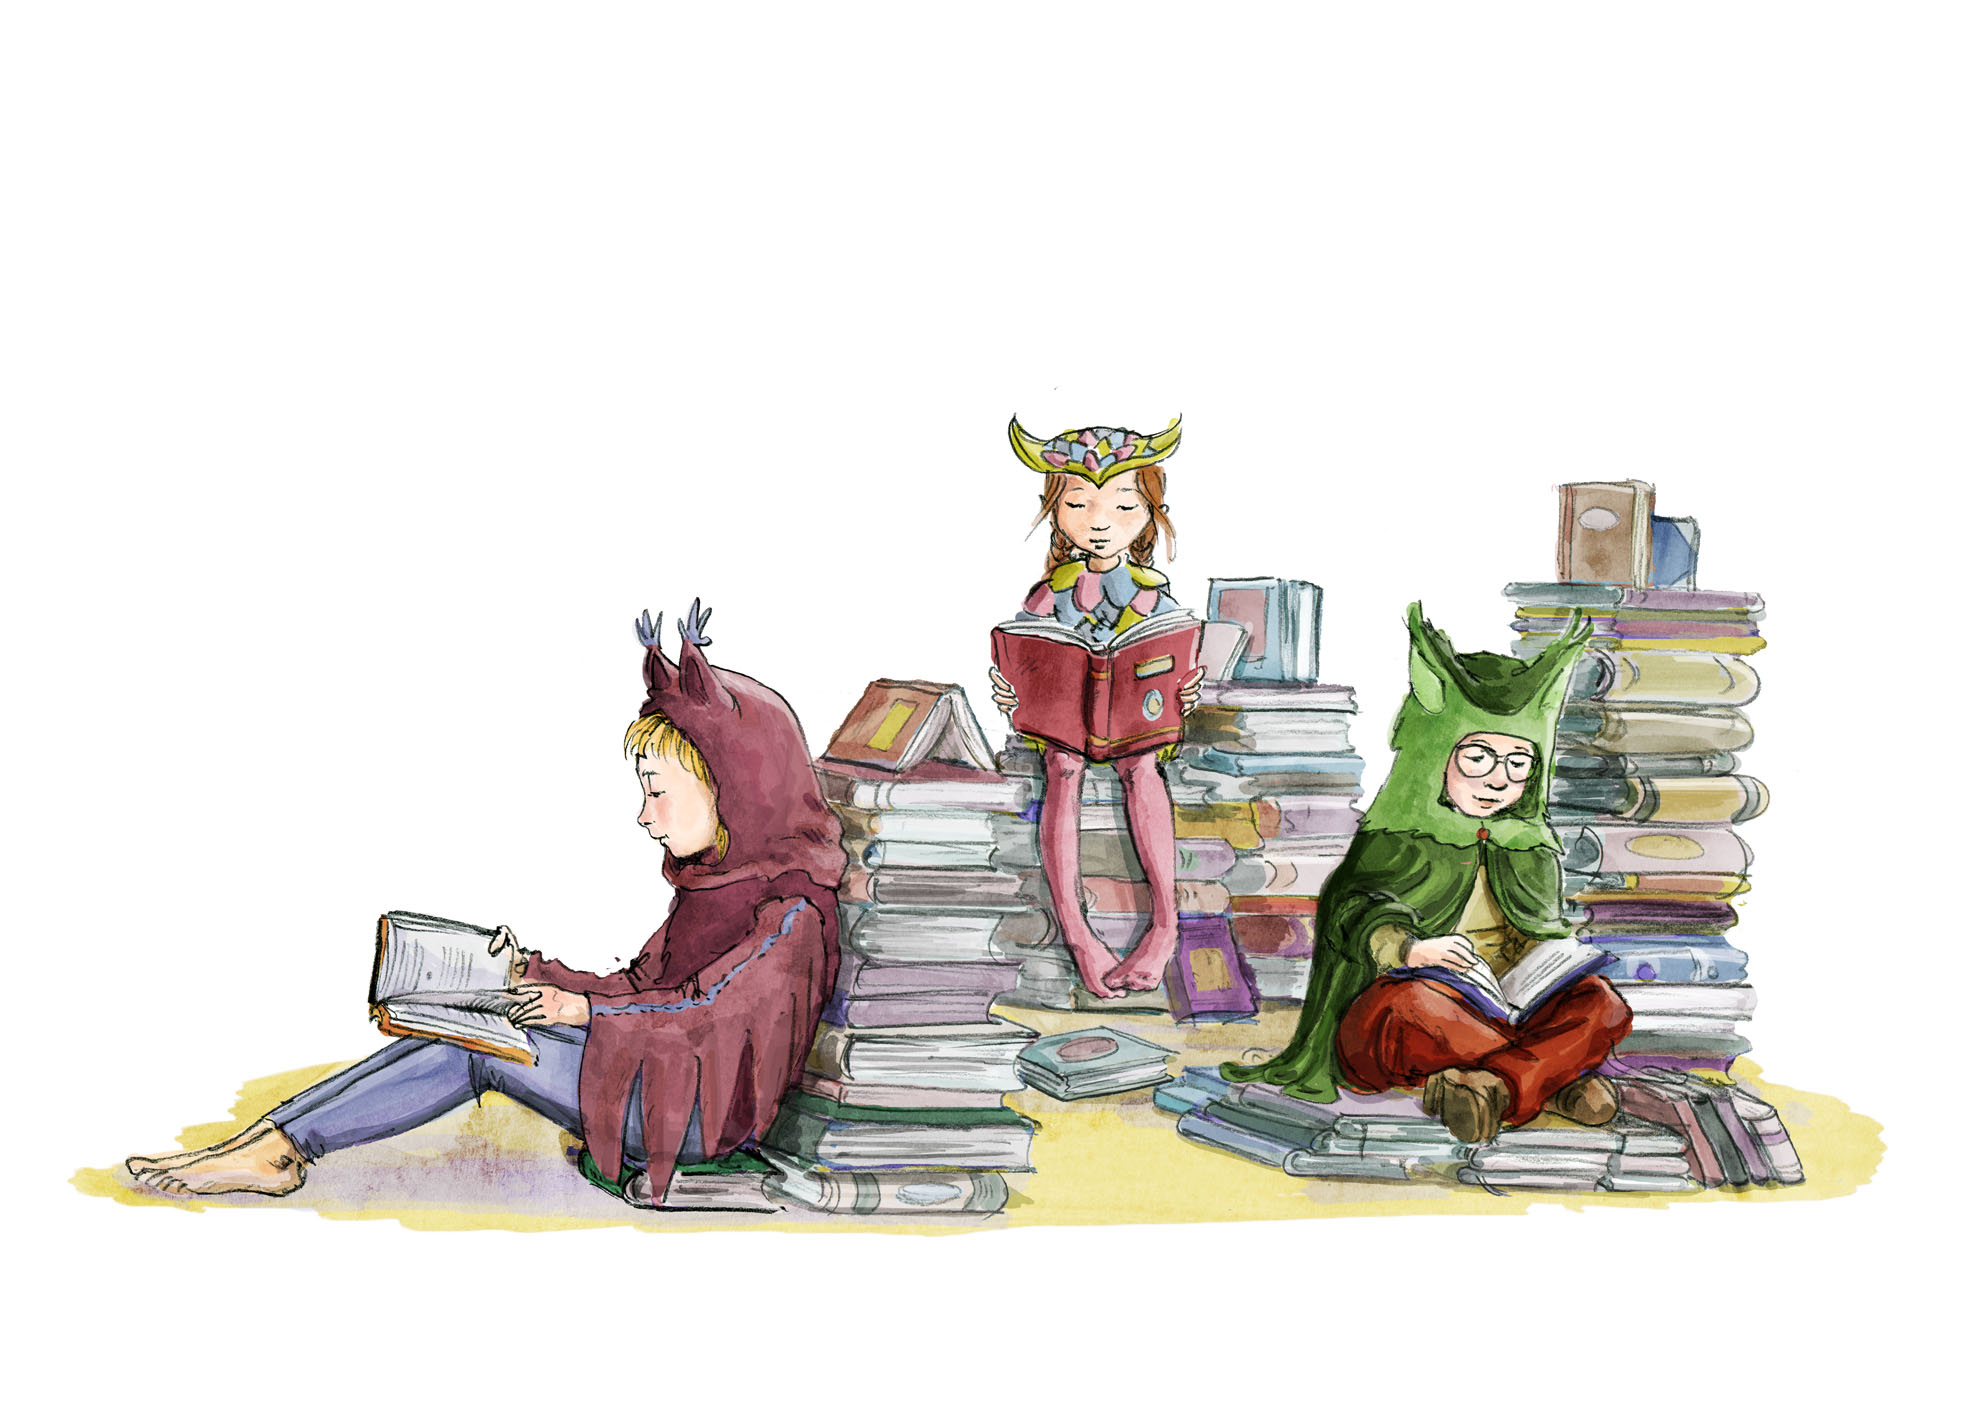 Drei Kinder sind als Eulen verkleidet und sitzen auf und neben vielen Stapeln bunter Bücher und lesen. Three children are dressed as owls and are sitting among piles of books, each one reading a book.